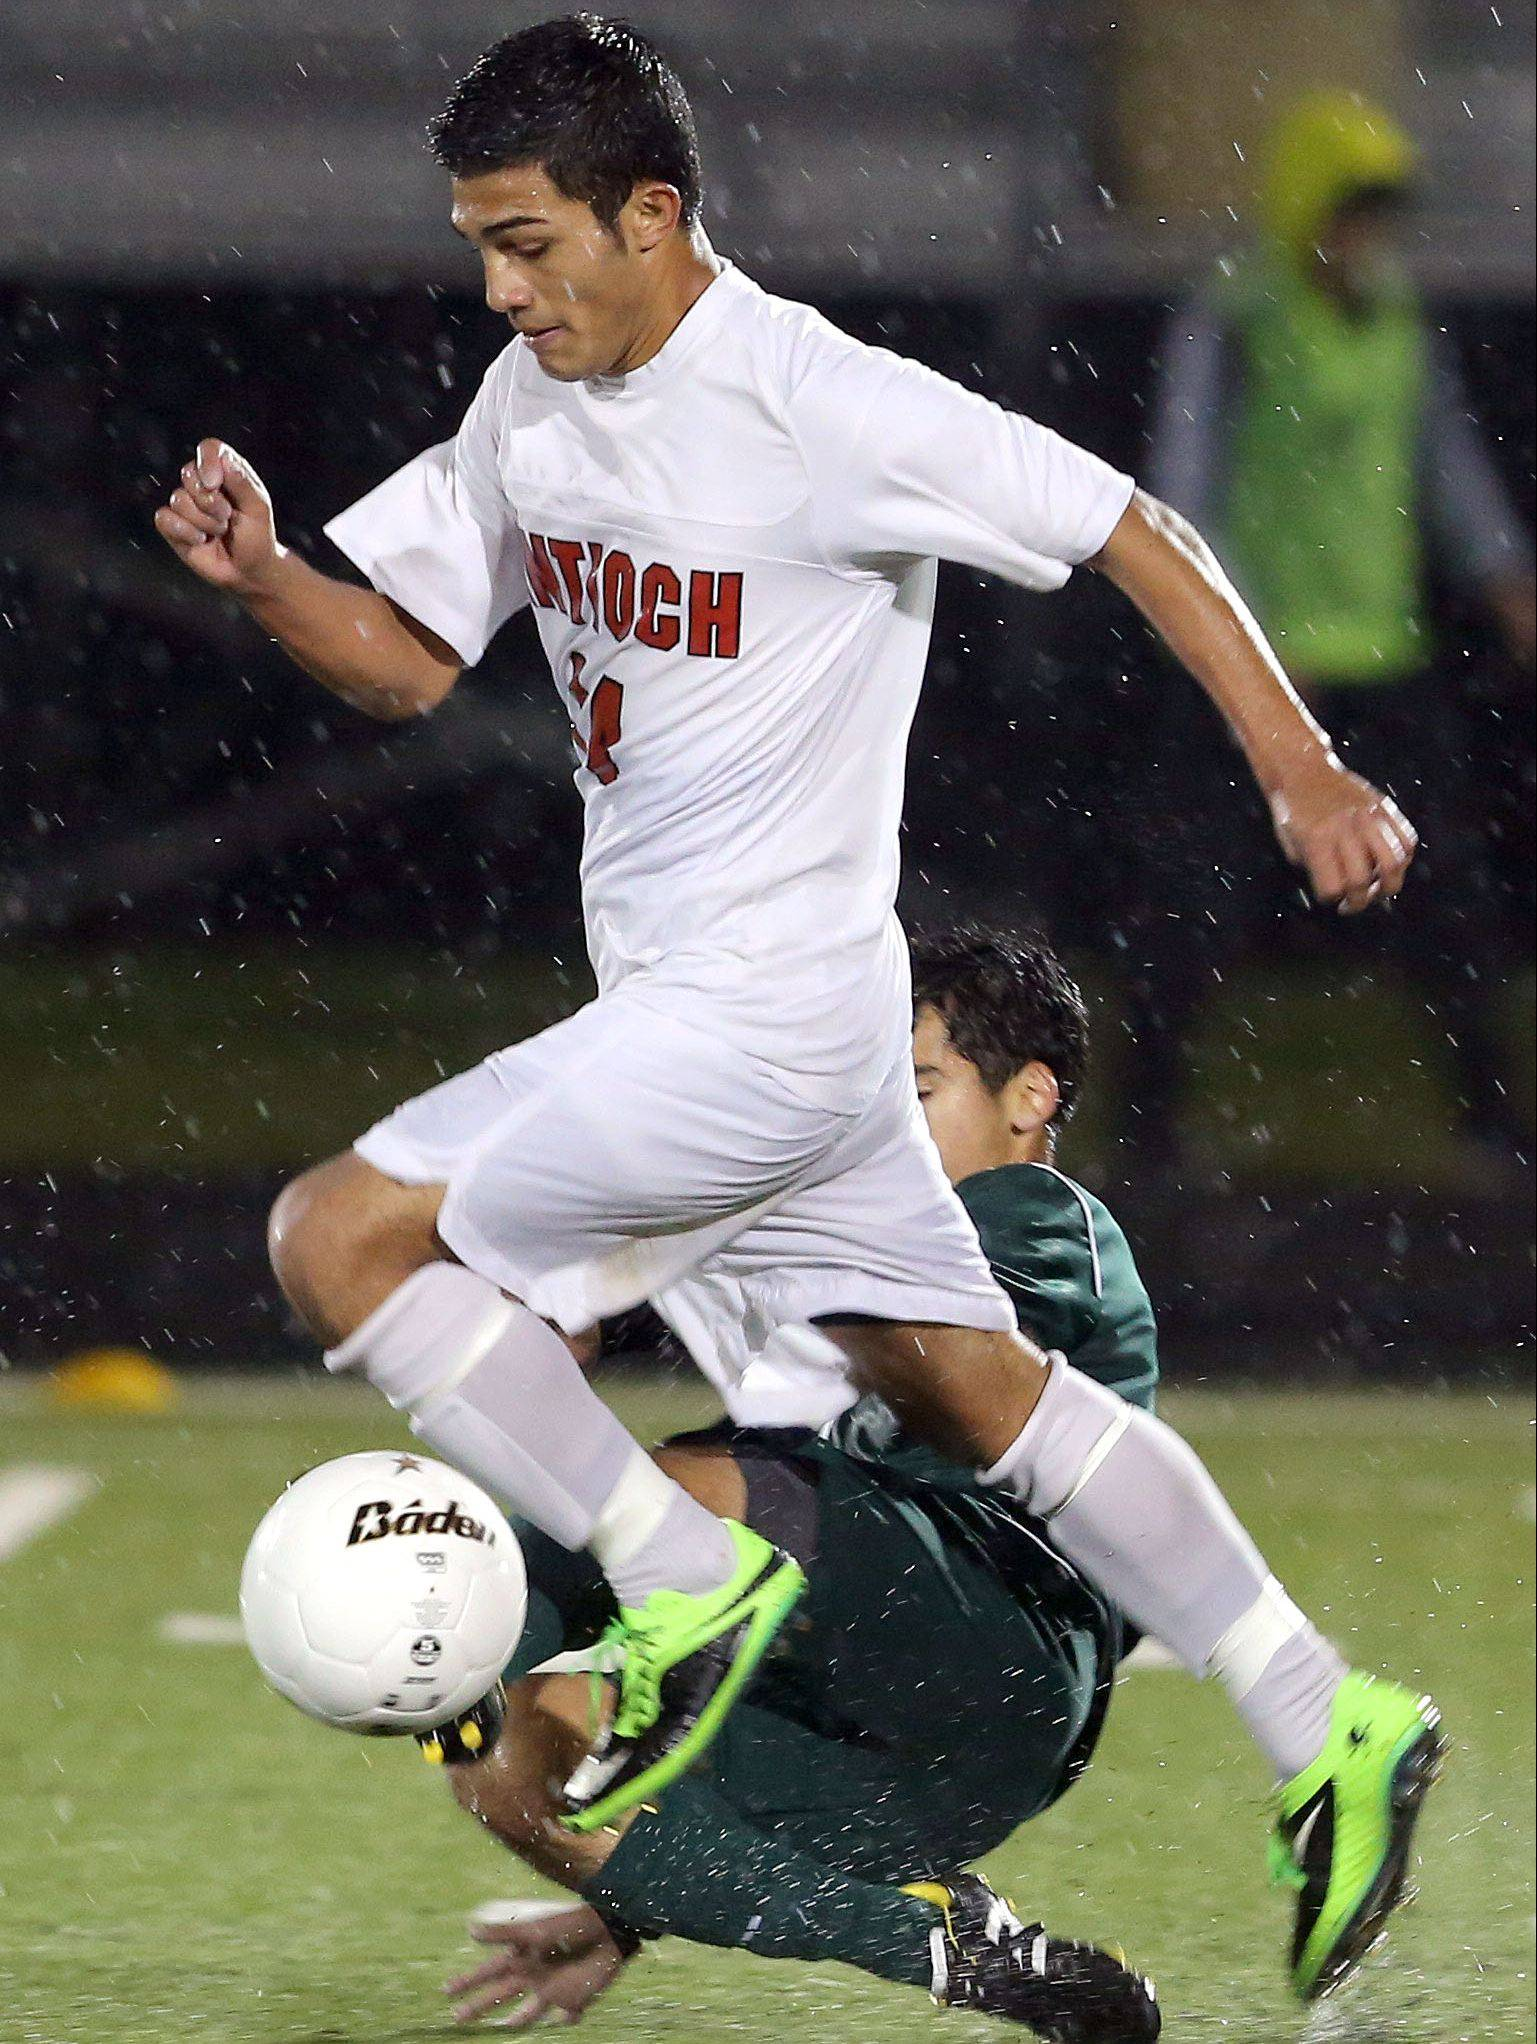 Antioch�s Iven Hernandez drives down the field in Class 3A sectional semifinal play against Grayslake Central on Wednesday at Grayslake North High School.